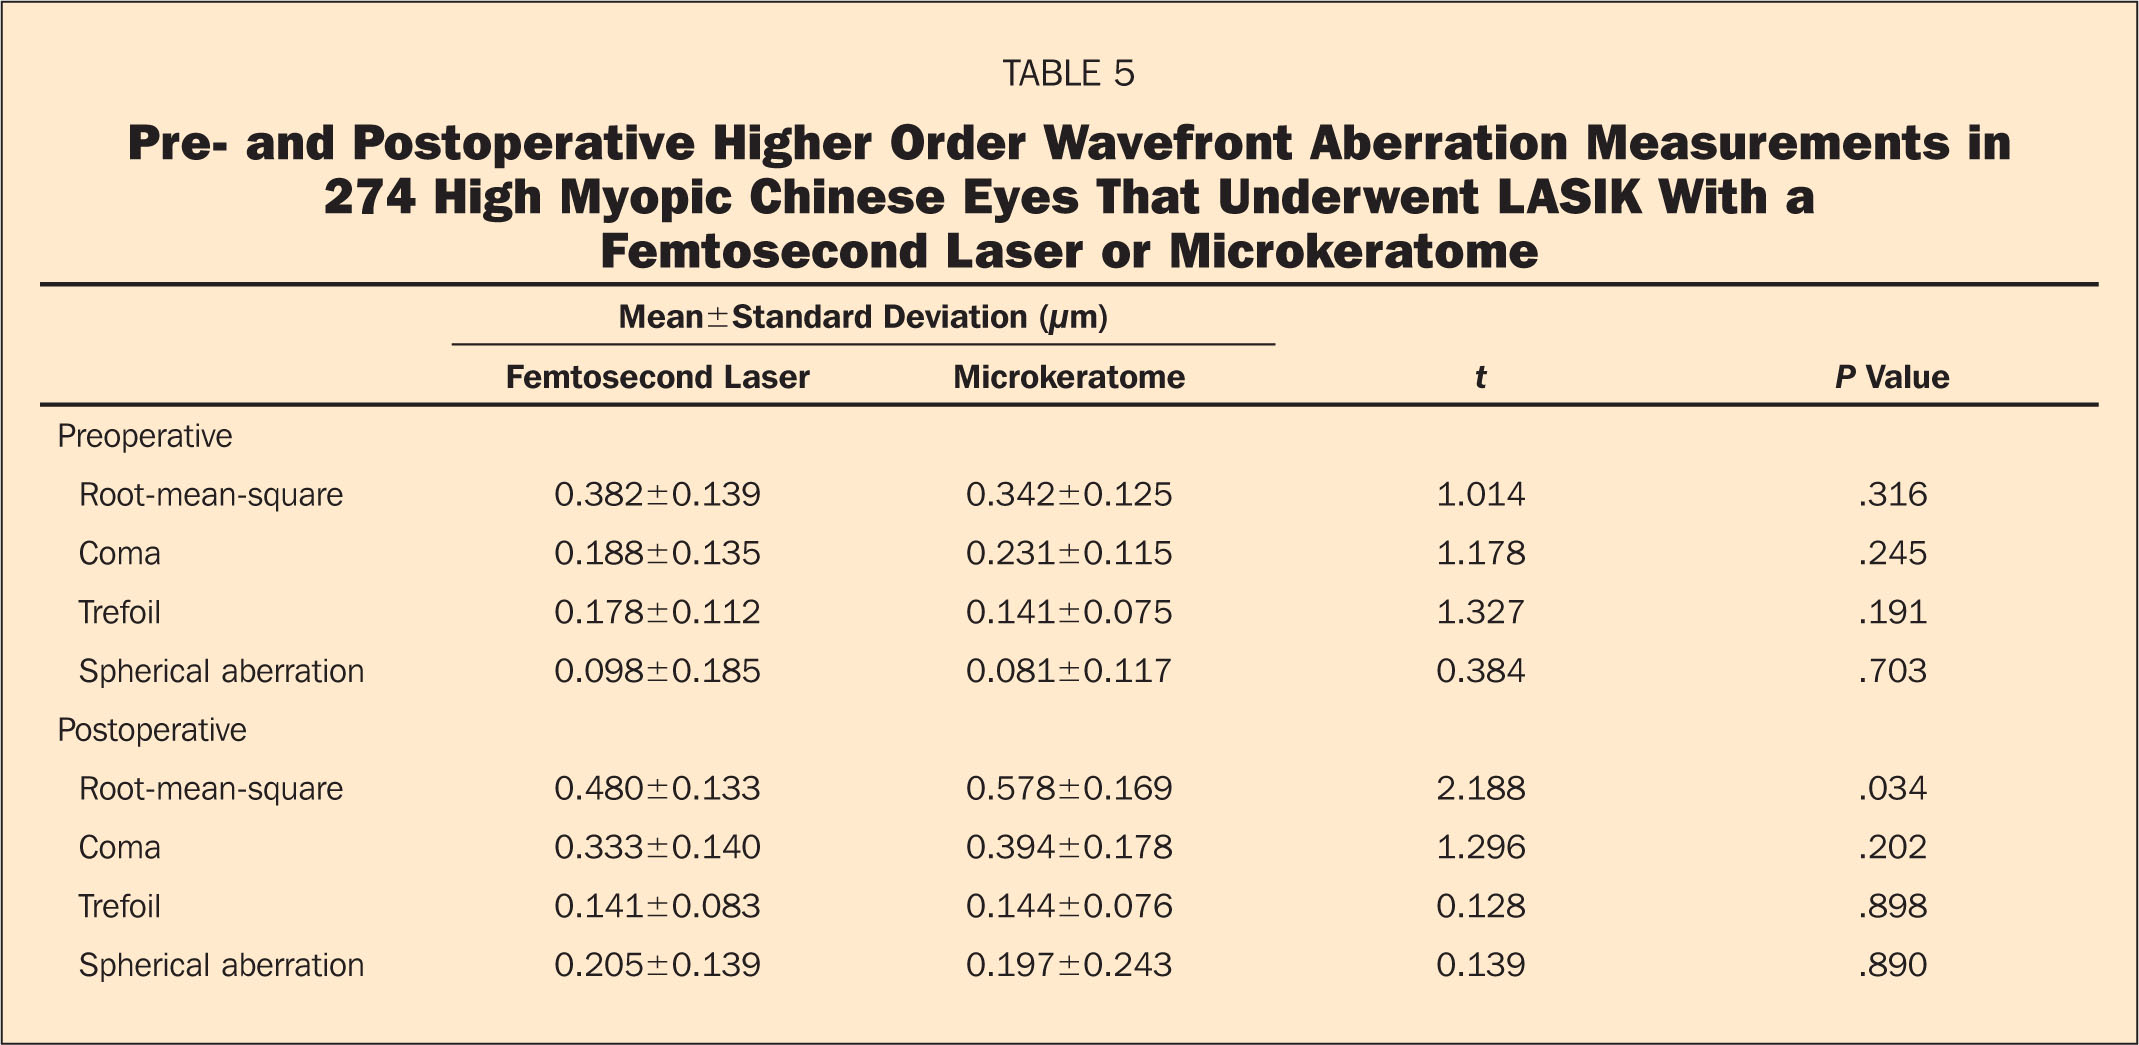 Pre- and Postoperative Higher Order Wavefront Aberration Measurements in 274 High Myopic Chinese Eyes that Underwent LASIK with a Femtosecond Laser or Microkeratome